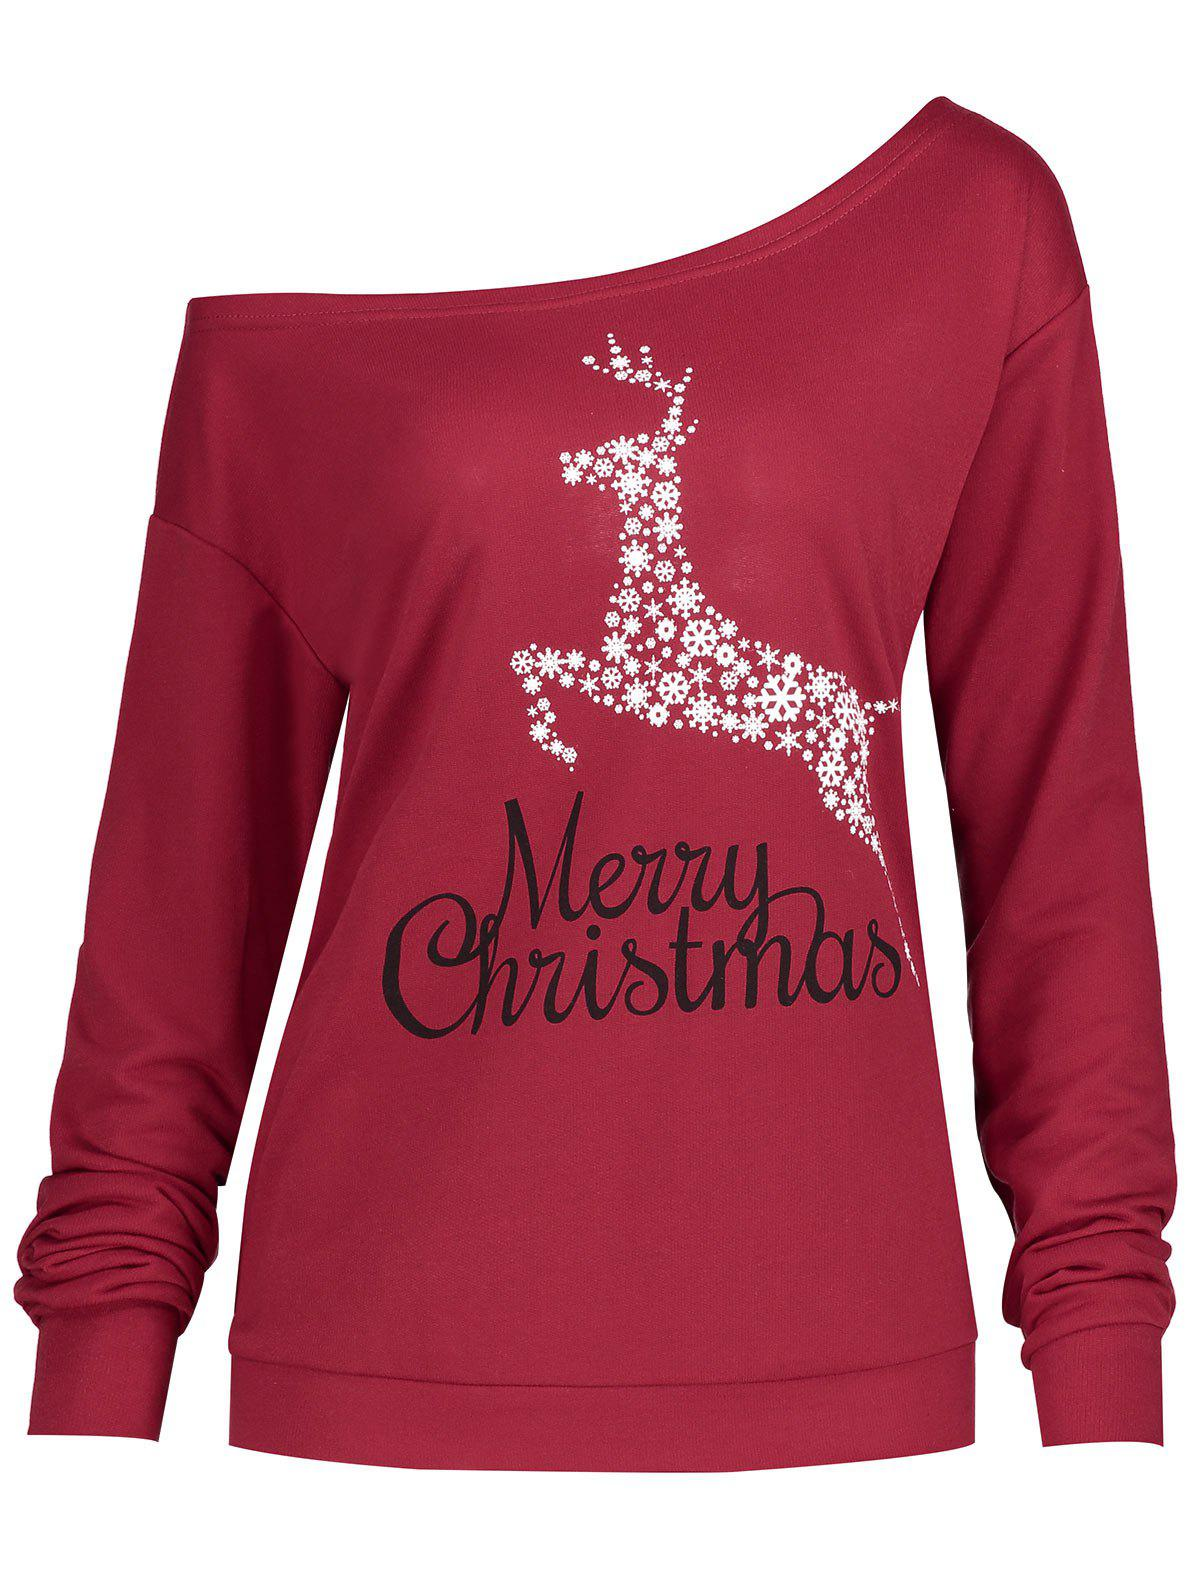 Christmas Snowflake Elk Plus Size SweatshirtWOMEN<br><br>Size: XL; Color: WINE RED; Material: Cotton,Polyester; Shirt Length: Regular; Sleeve Length: Full; Style: Casual; Pattern Style: Animal,Letter; Season: Fall,Spring,Winter; Weight: 0.3150kg; Package Contents: 1 x Sweatshirt;